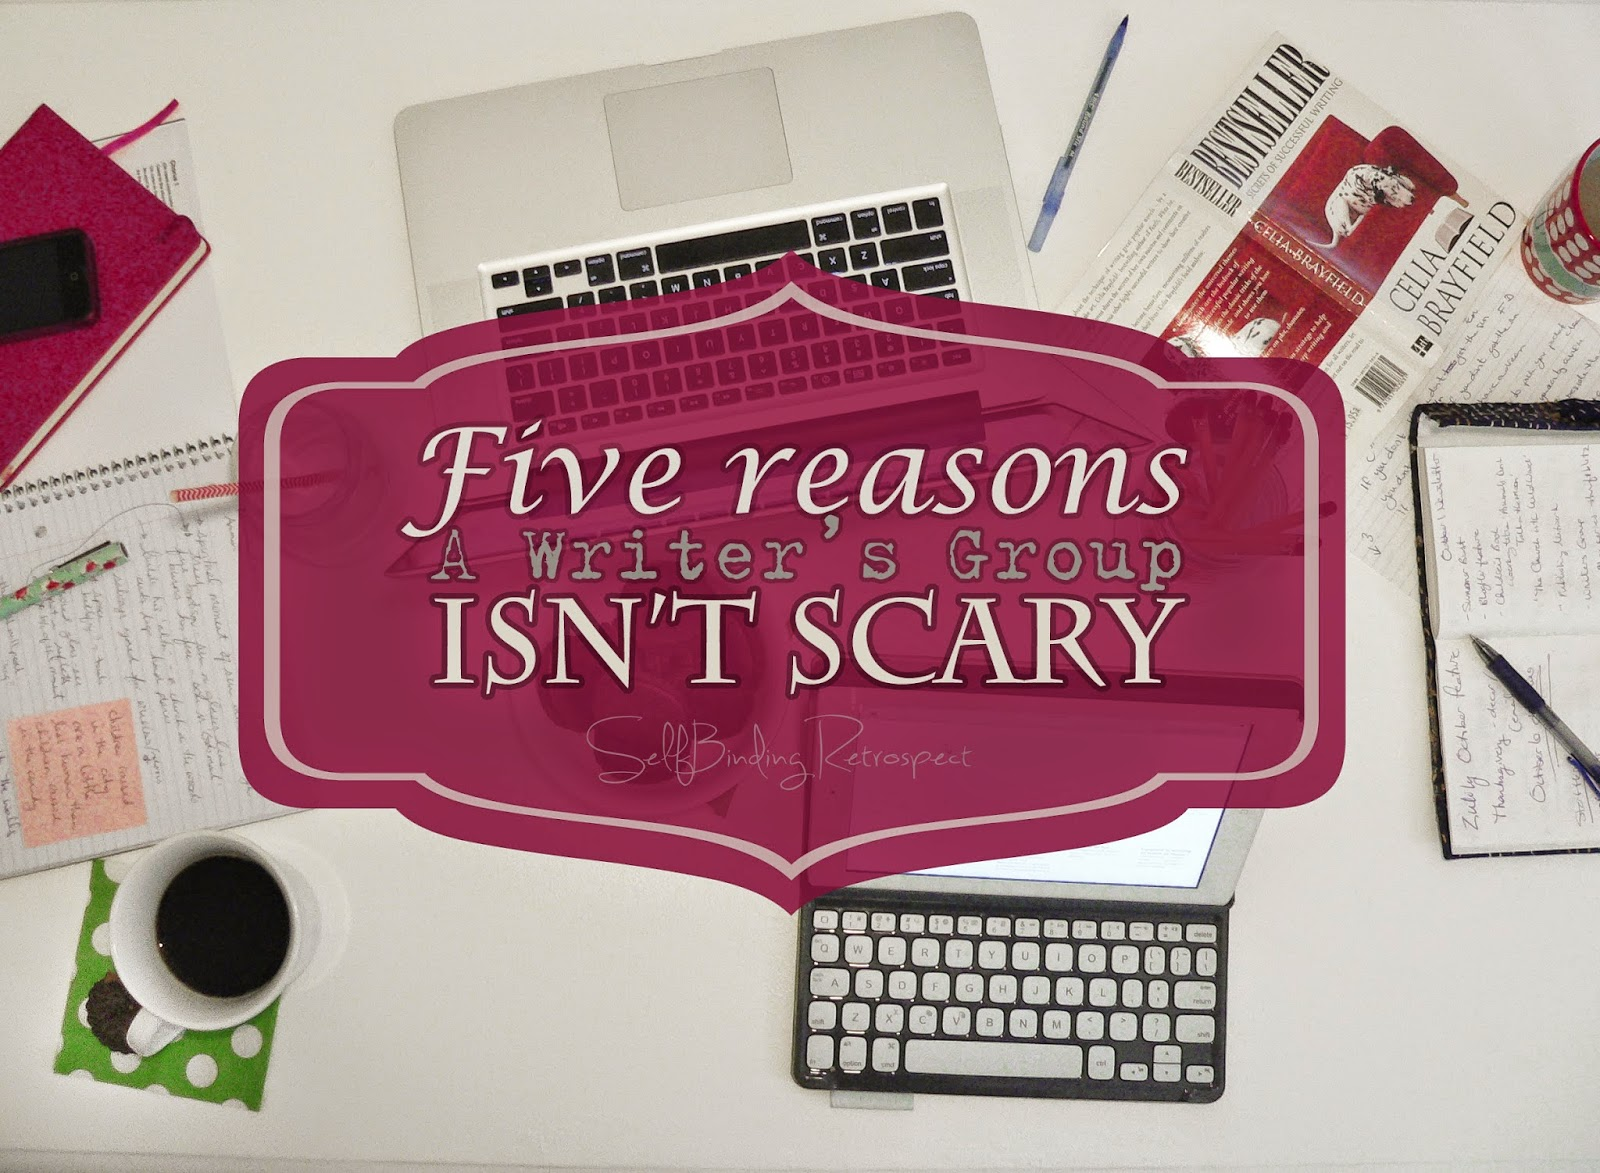 5 Reasons A Writer's Group Isn't Scary - SelfBinding Retrospect by Alanna Rusnak